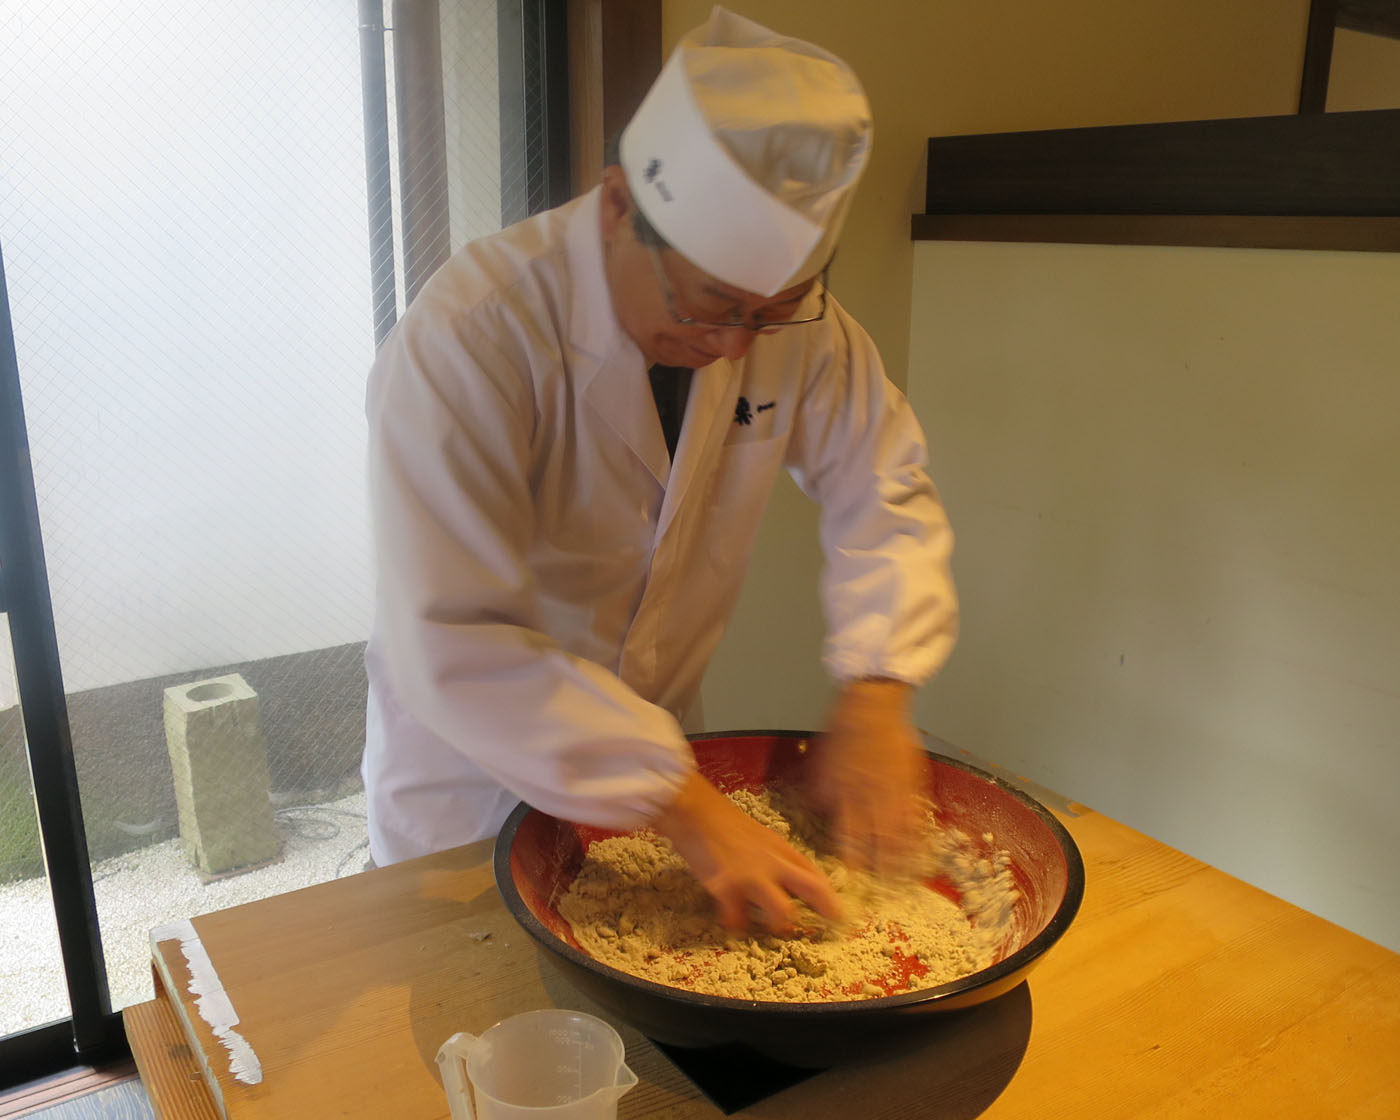 Soba noodle making and tasting with a master at a traditional Japanese restaurant